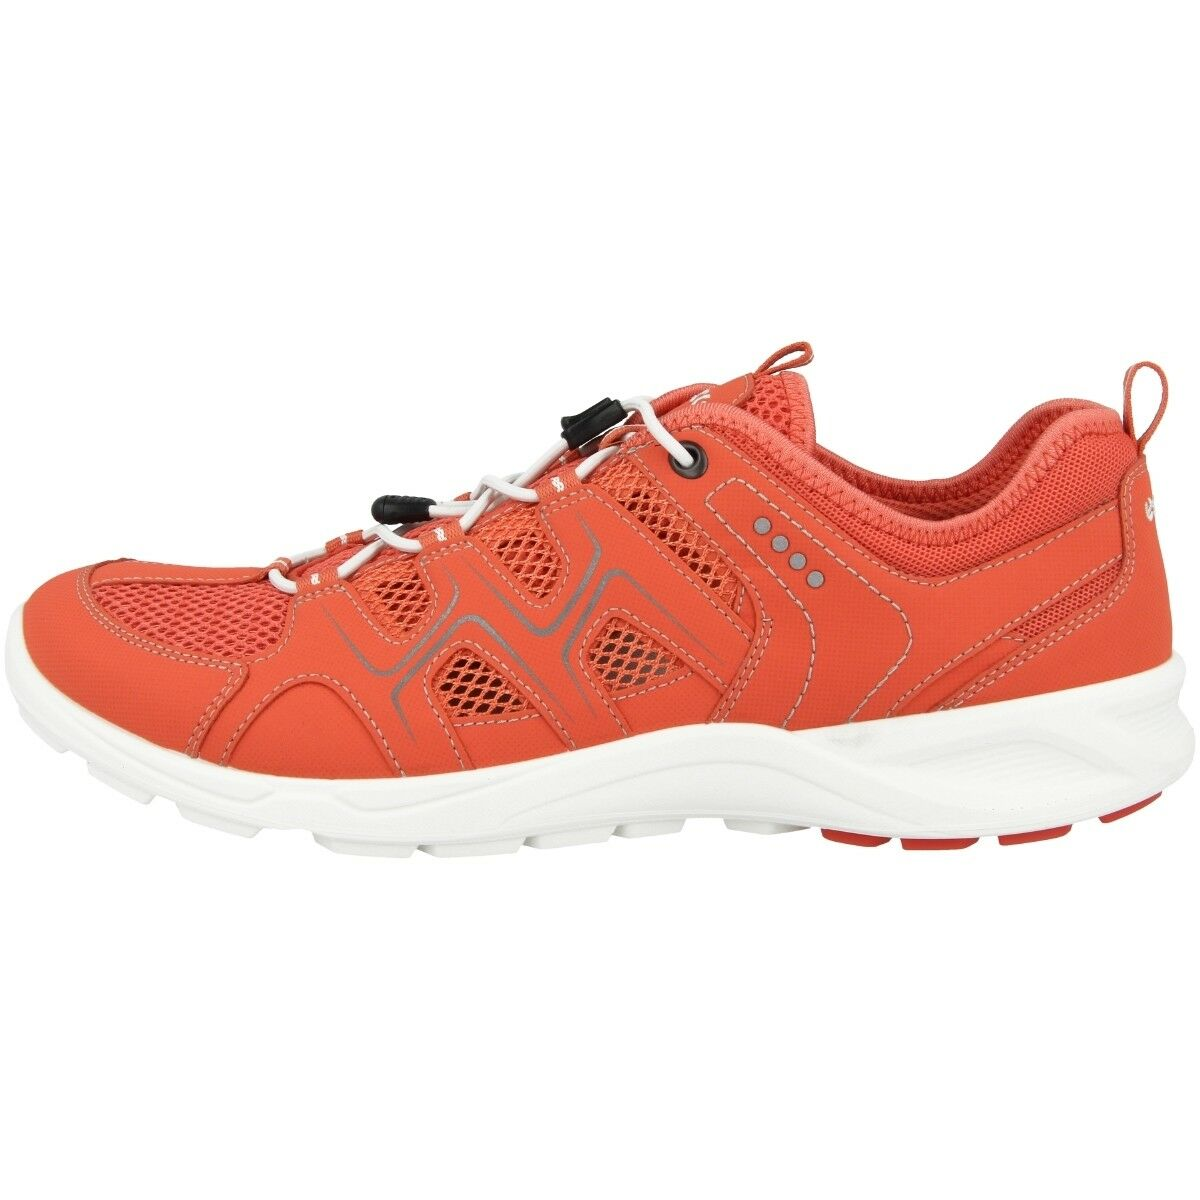 Ecco terracruise Lite Ladies trekking outdoor zapatos spiced coral 841113-50865